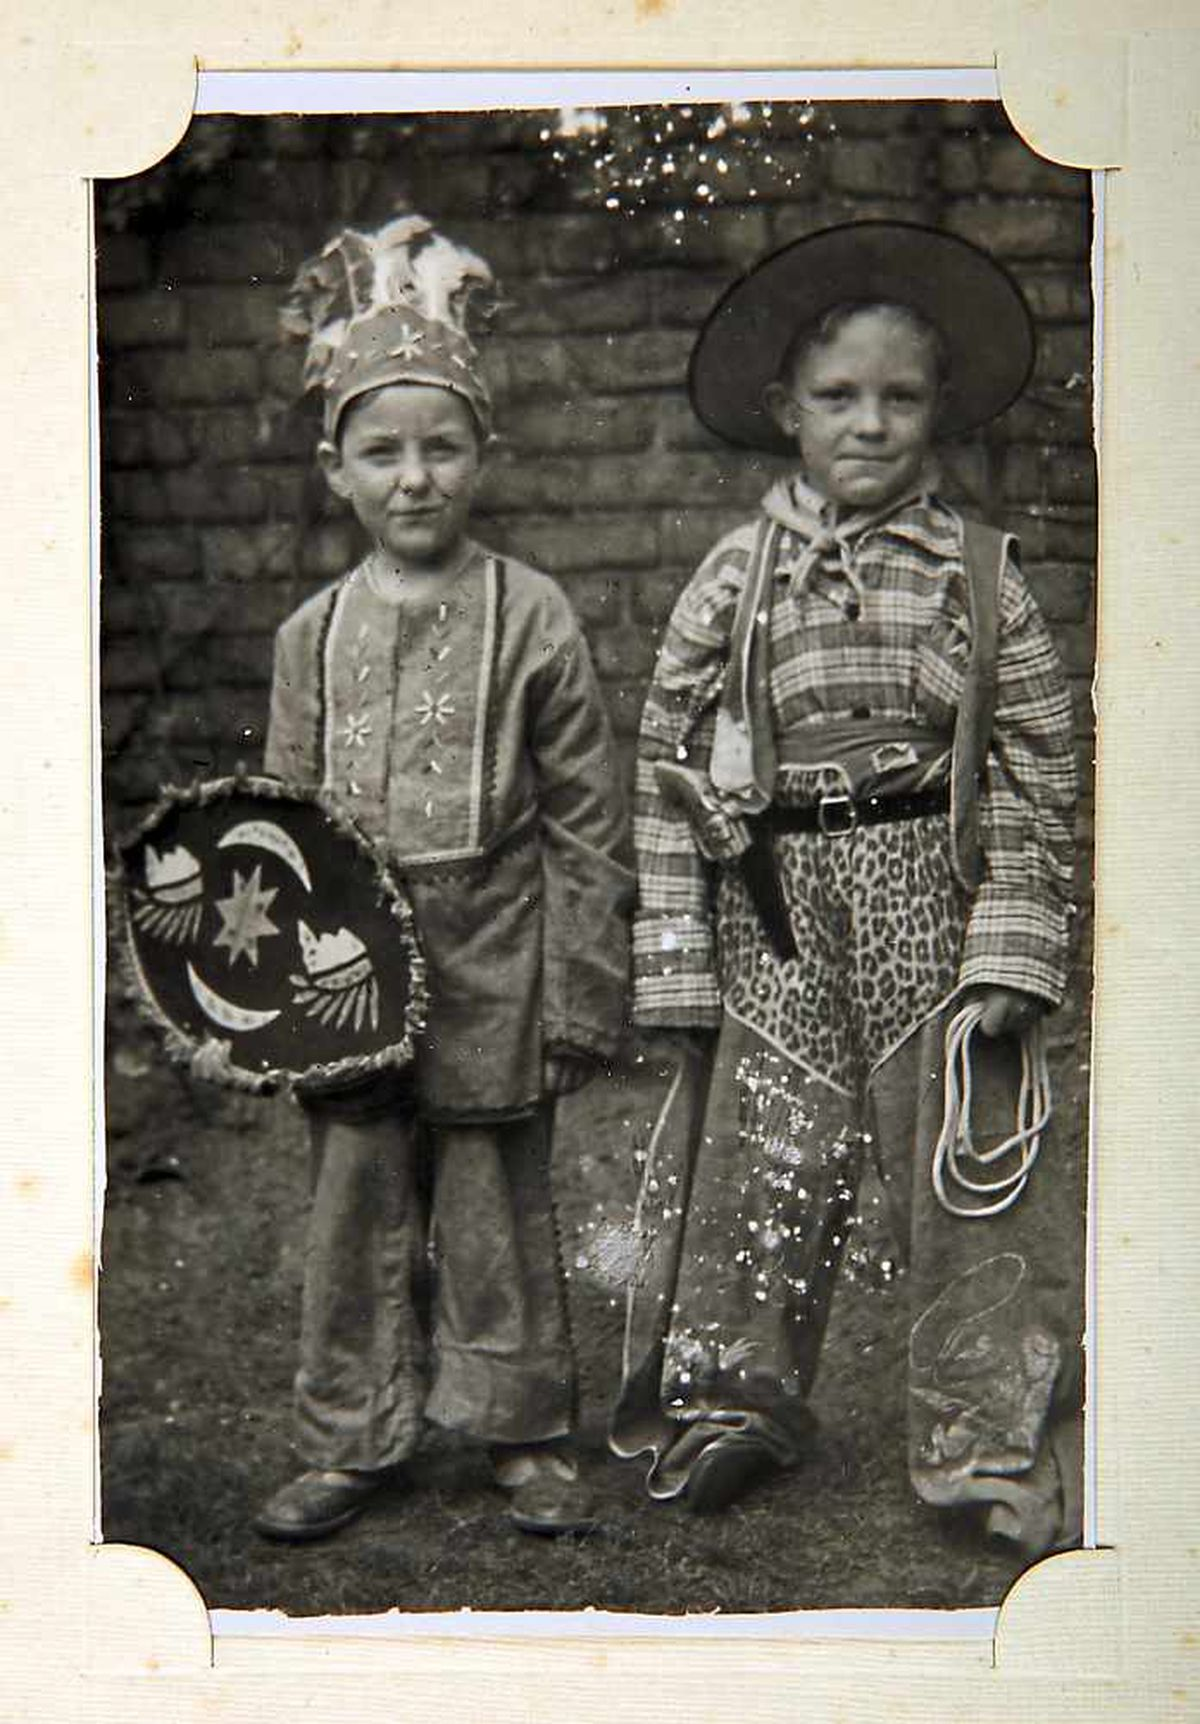 A young Eric playing at dressing up in the late 1940s